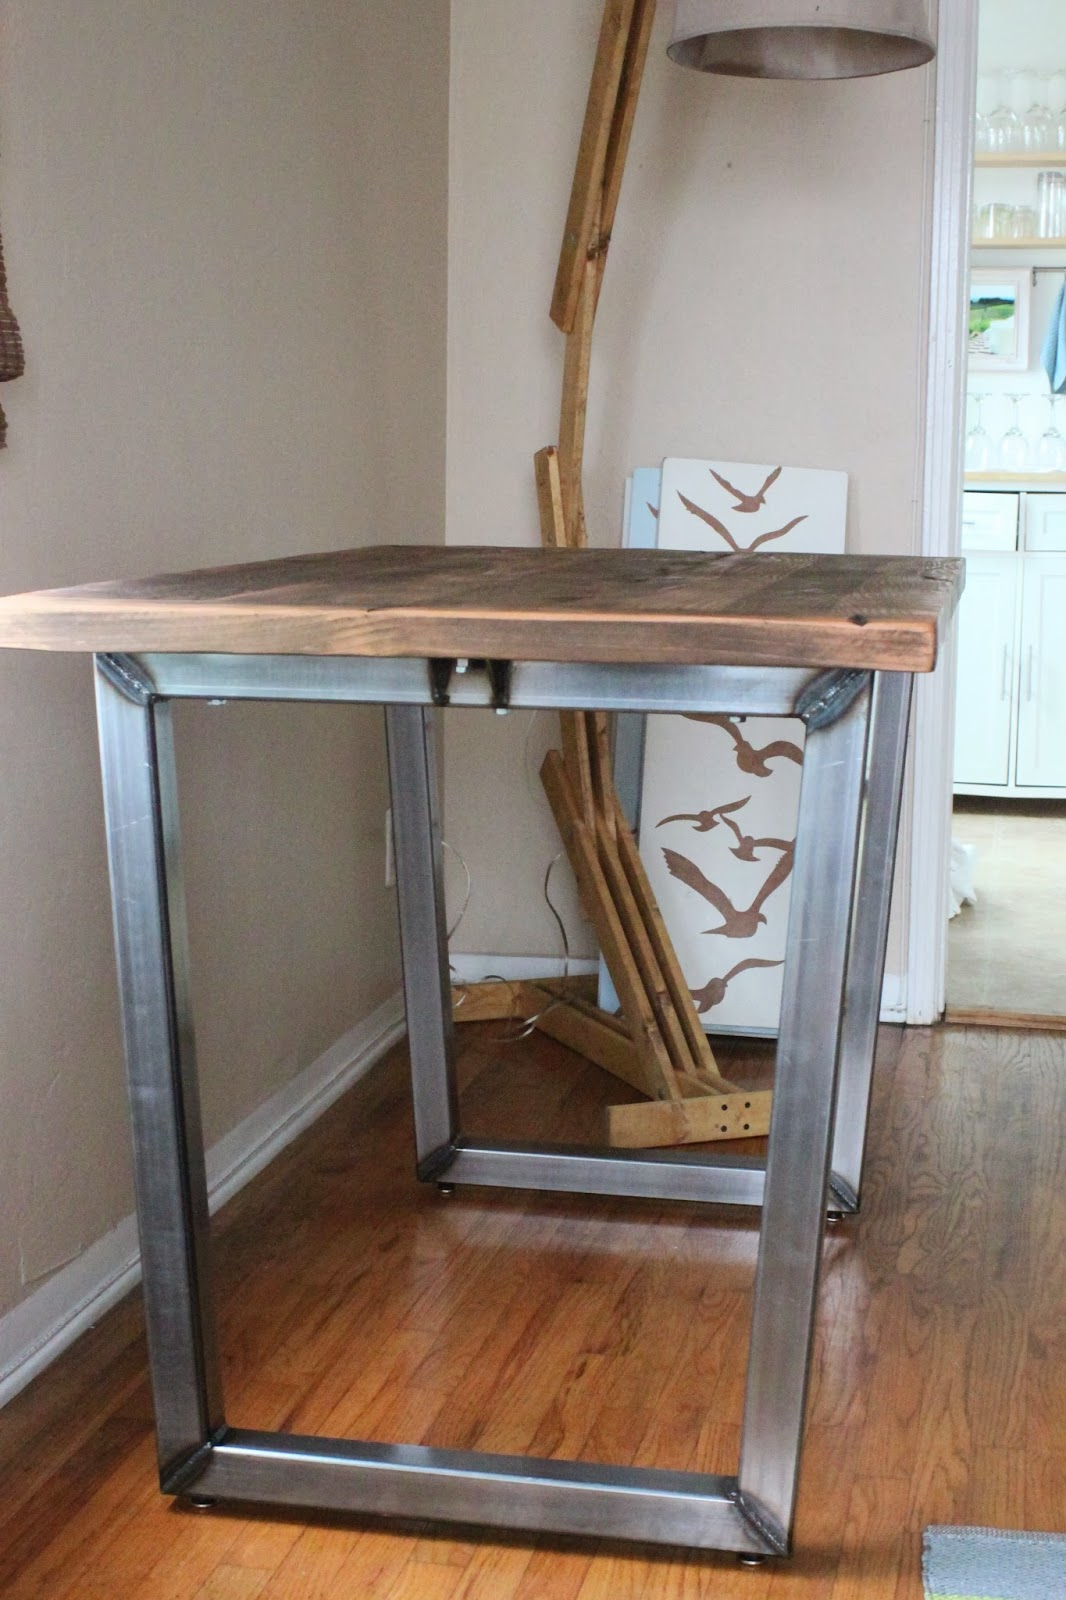 The polish carpenter rustic dining table with metal legs for Rustic iron table legs